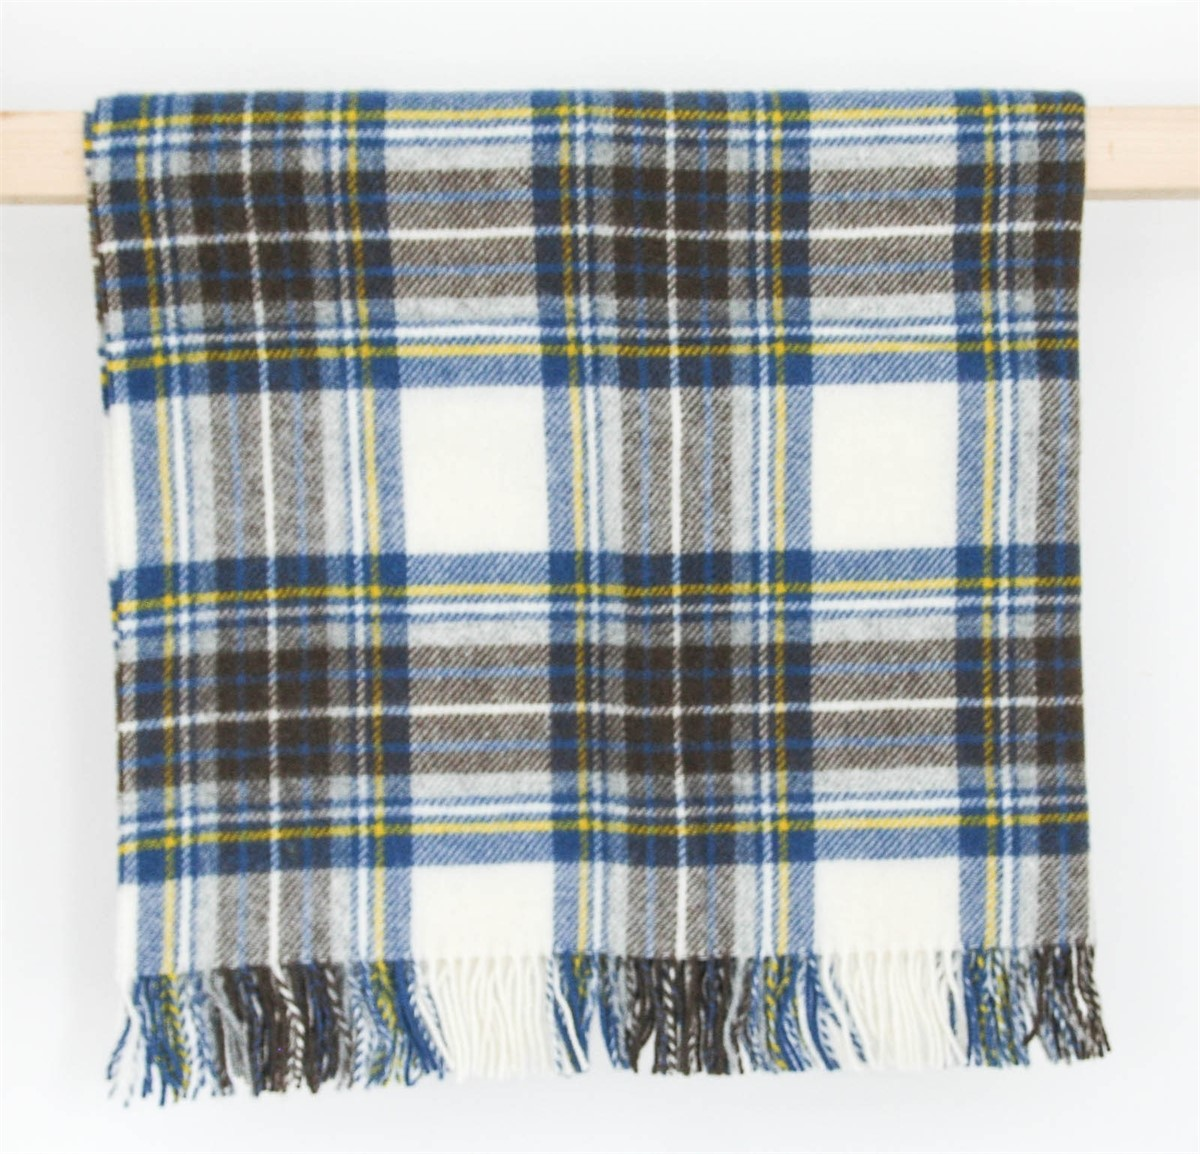 Wool Blanket Online British Made Gifts Muted Blue